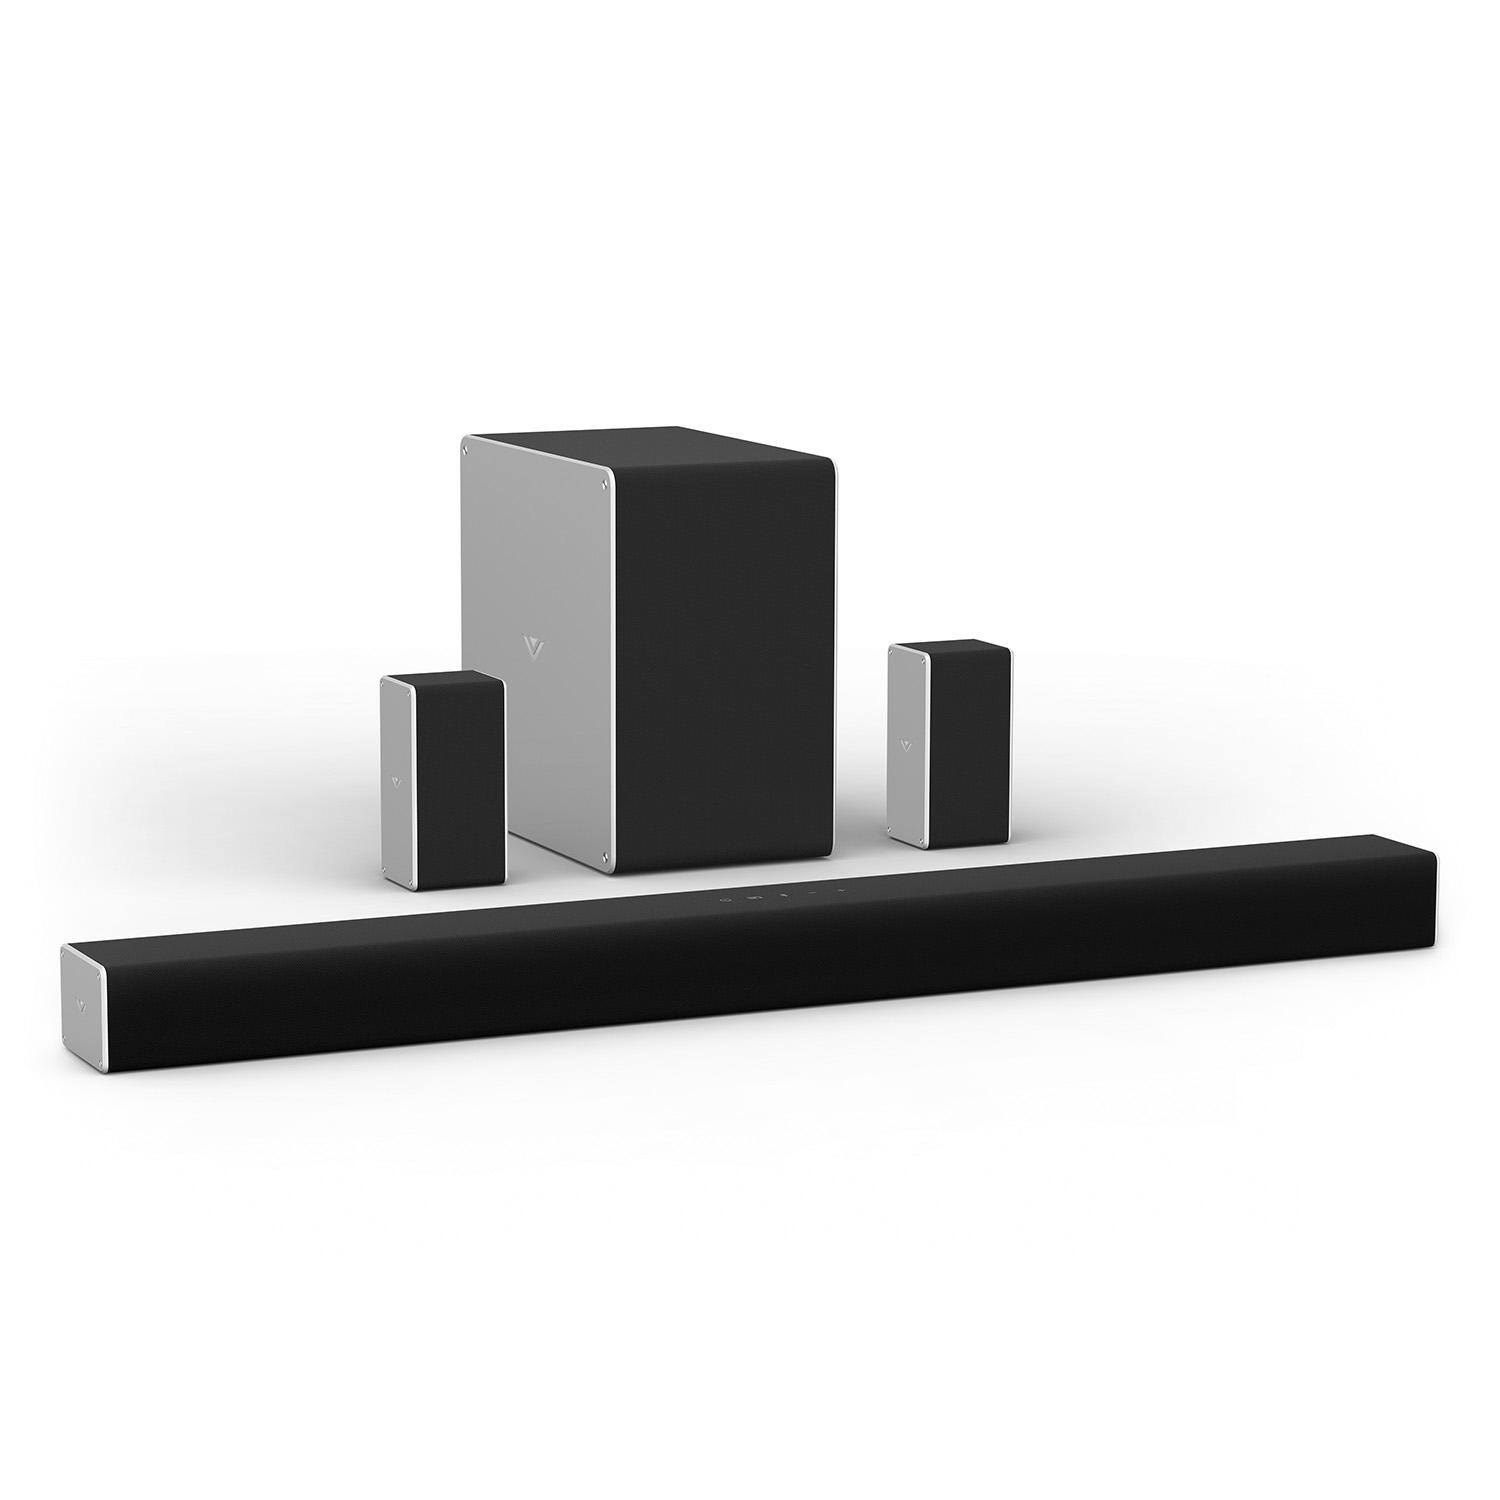 "Sam's Club Members: VIZIO 5.1.2-Chan Soundbar System w/ 6"" Wireless Subwoofer"